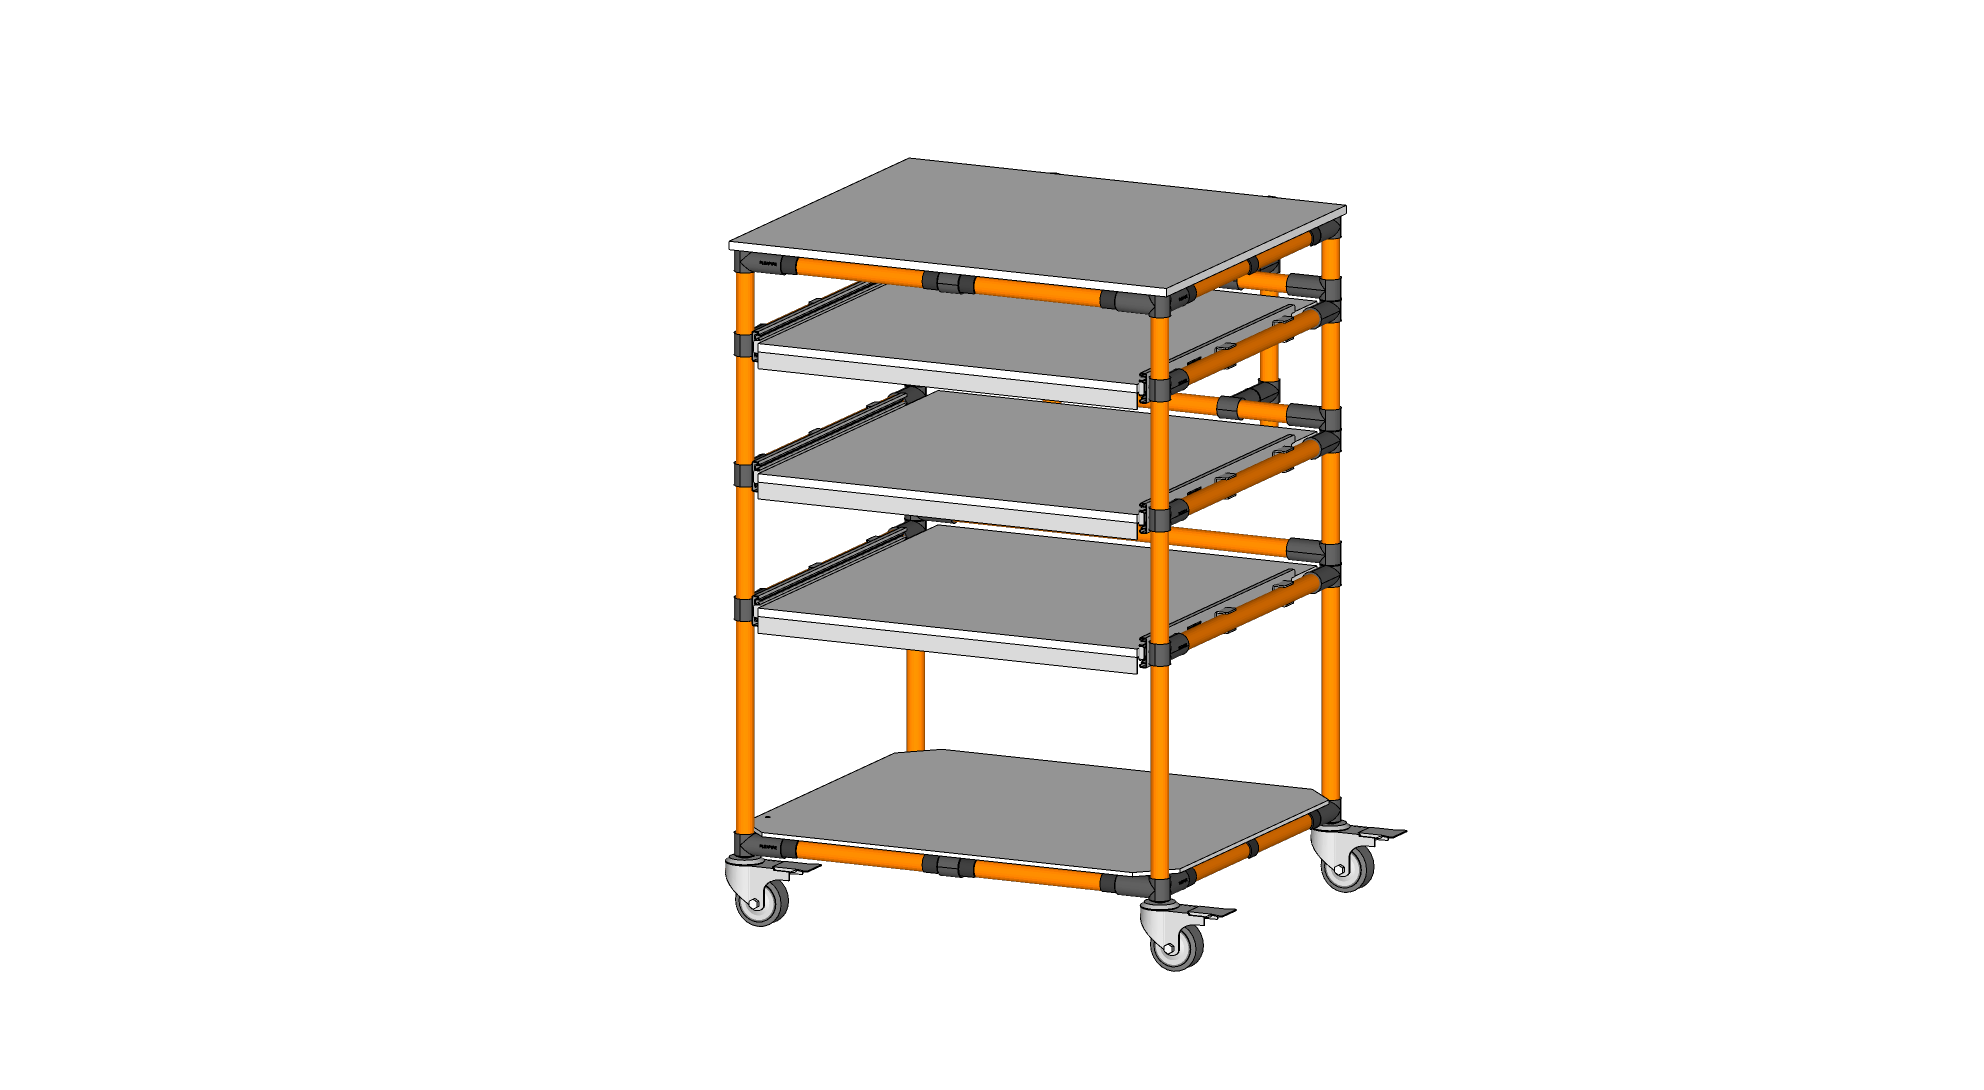 MOBILE STORAGE RACK WITH DRAWERS